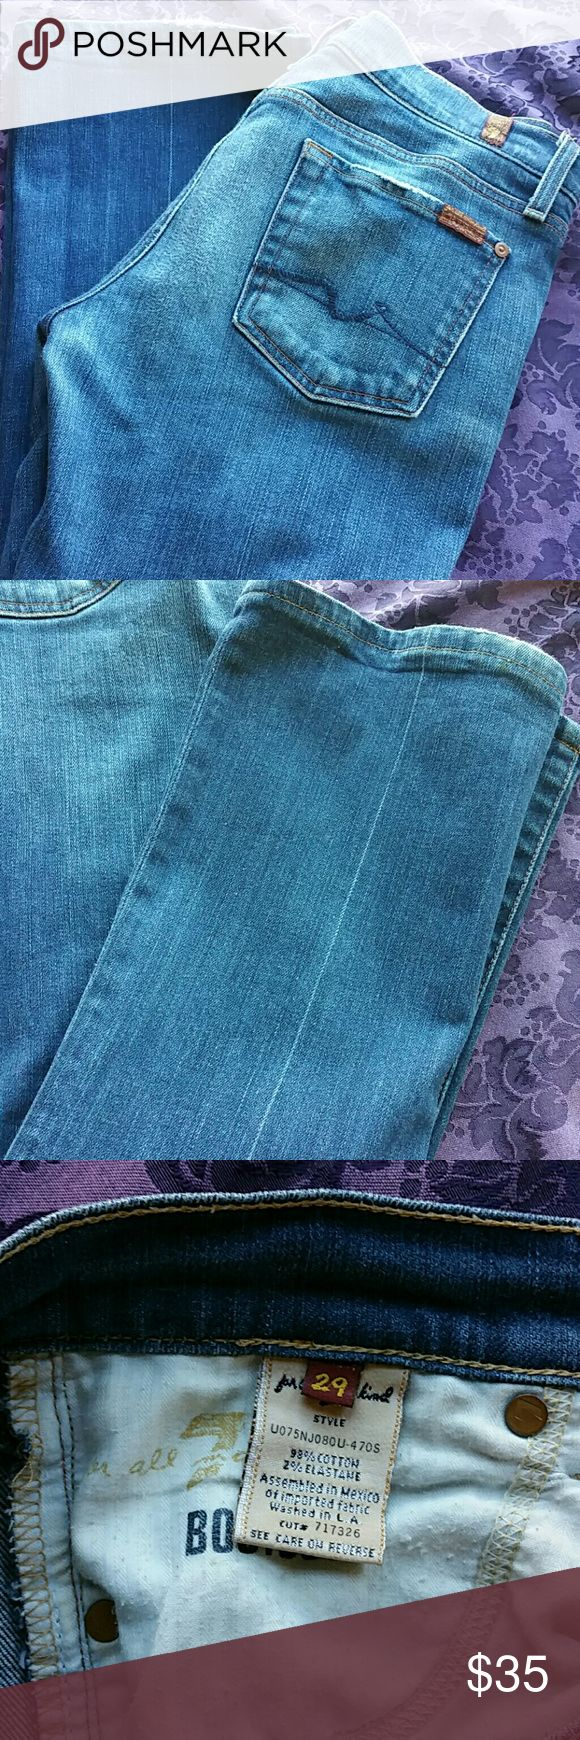 Seven Jeans Seven jeans, plenty of ware left, no holes, boot cut, size 29. Regular length, I'm 5,5 and they are perfect. Seven7 Jeans Boot Cut